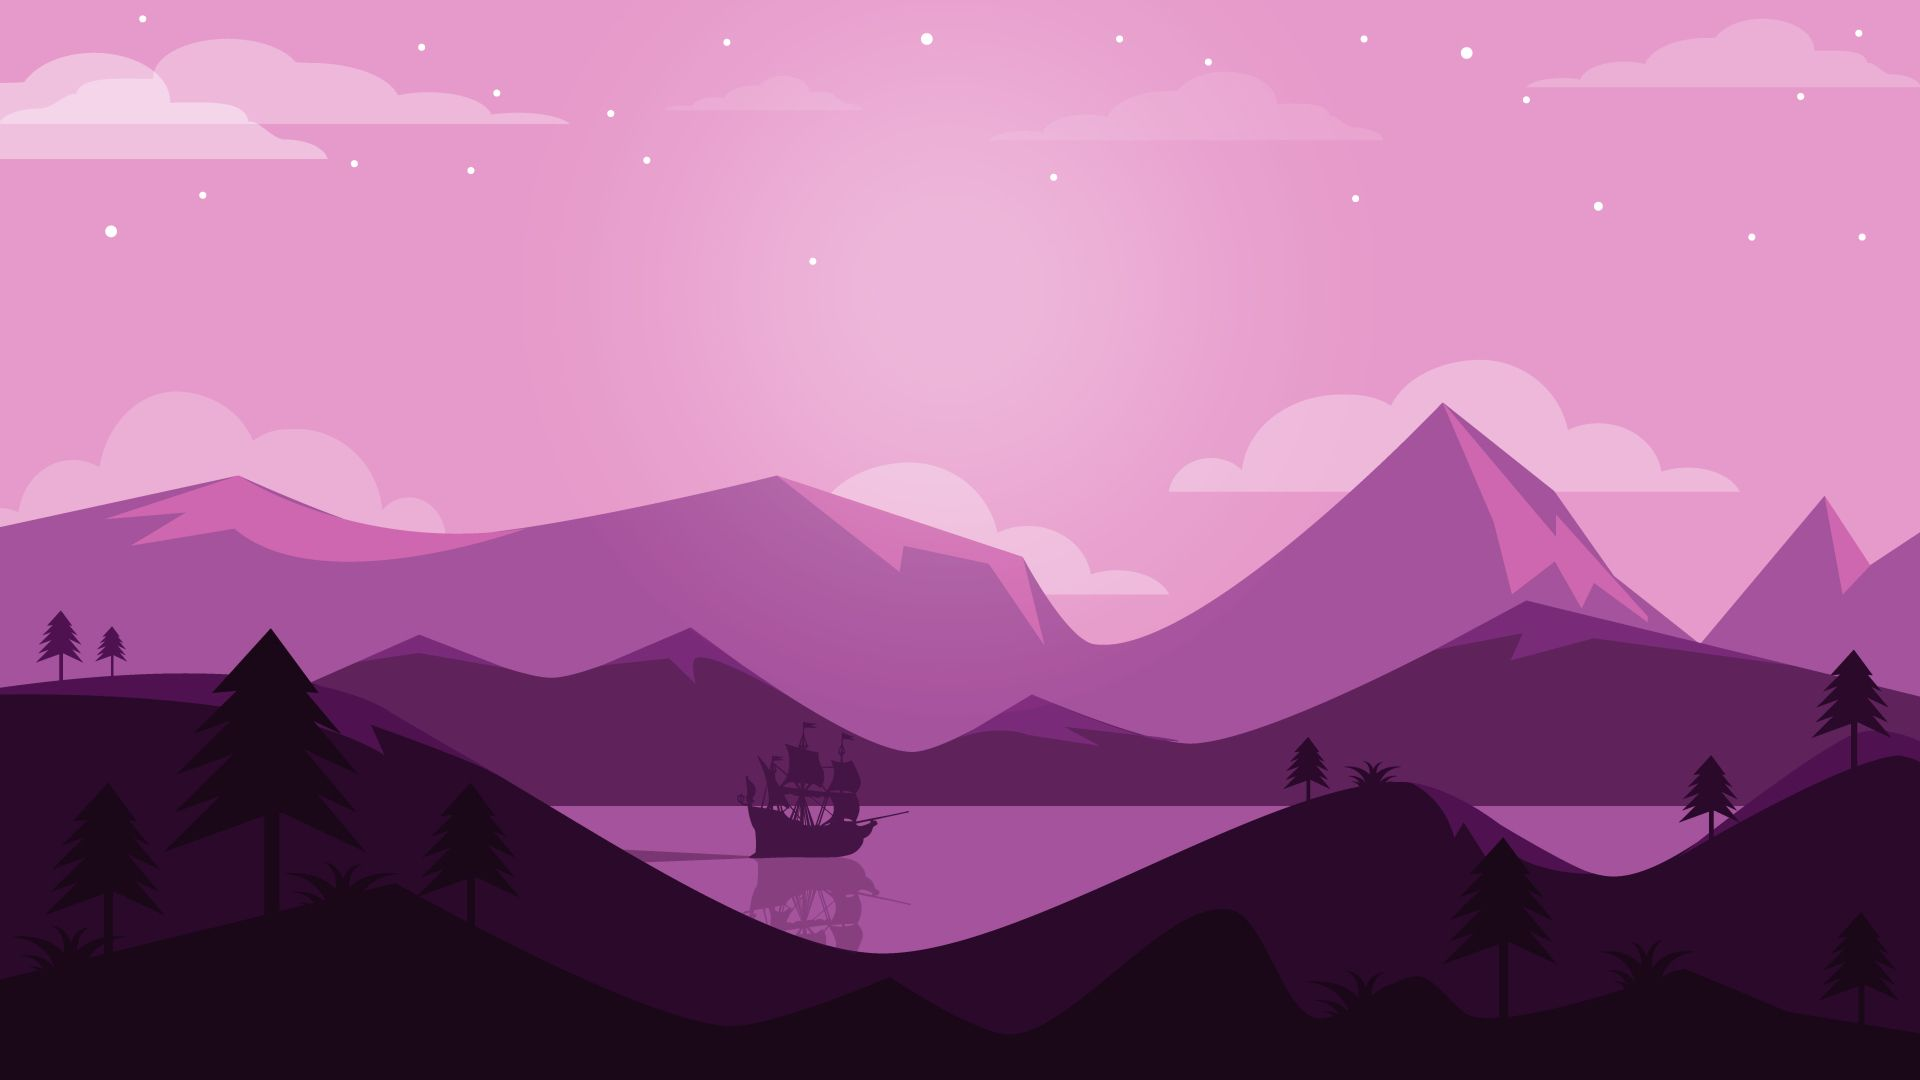 Free Mountain Vector wallpaper for computer